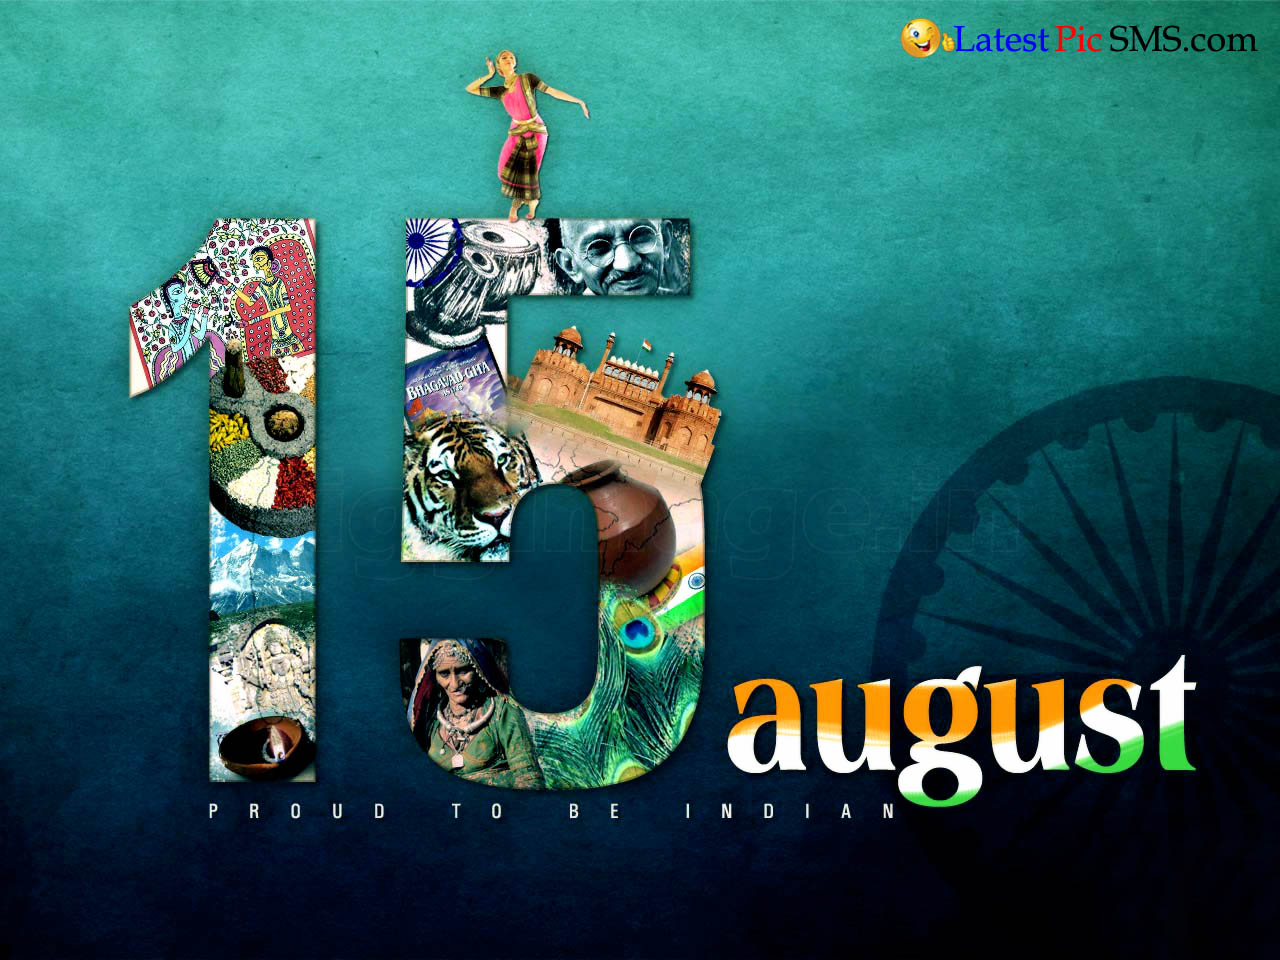 15 August Proud To be an Indian Beautiful Photos